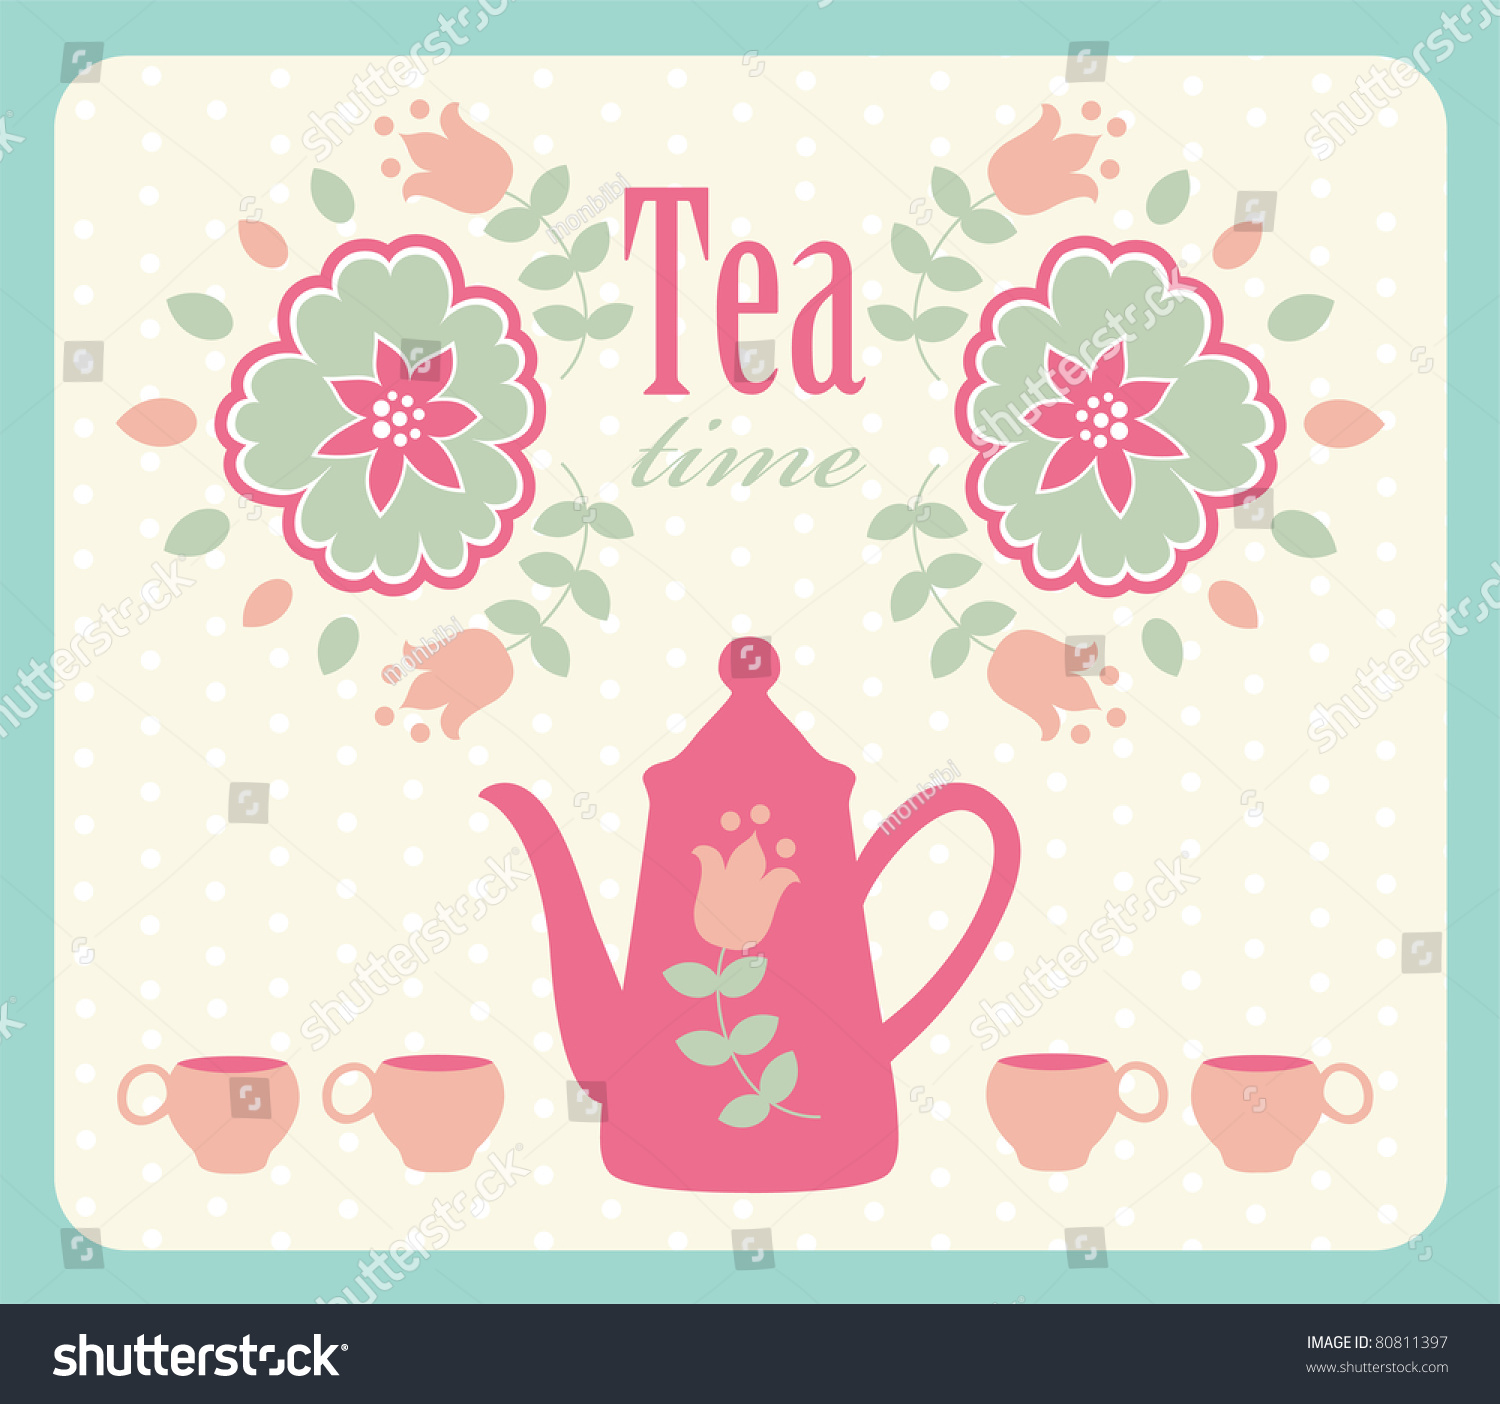 Vintage Card With Teapot. Vector Illustration - 80811397 ...